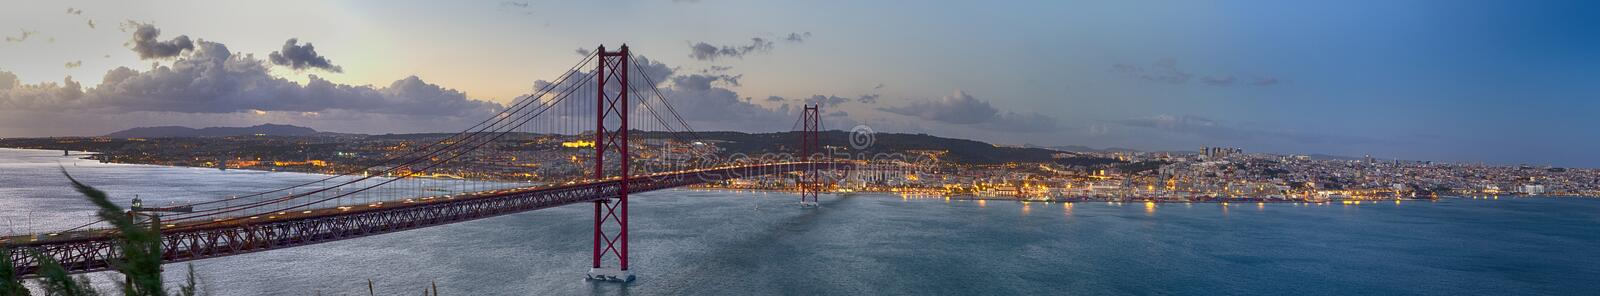 Crossing The Tagus River. Amazing Panoramic Image of Lisbon Cityscape Along with 25th April Bridge Ponte 25 de Abril. Taken from stock photos